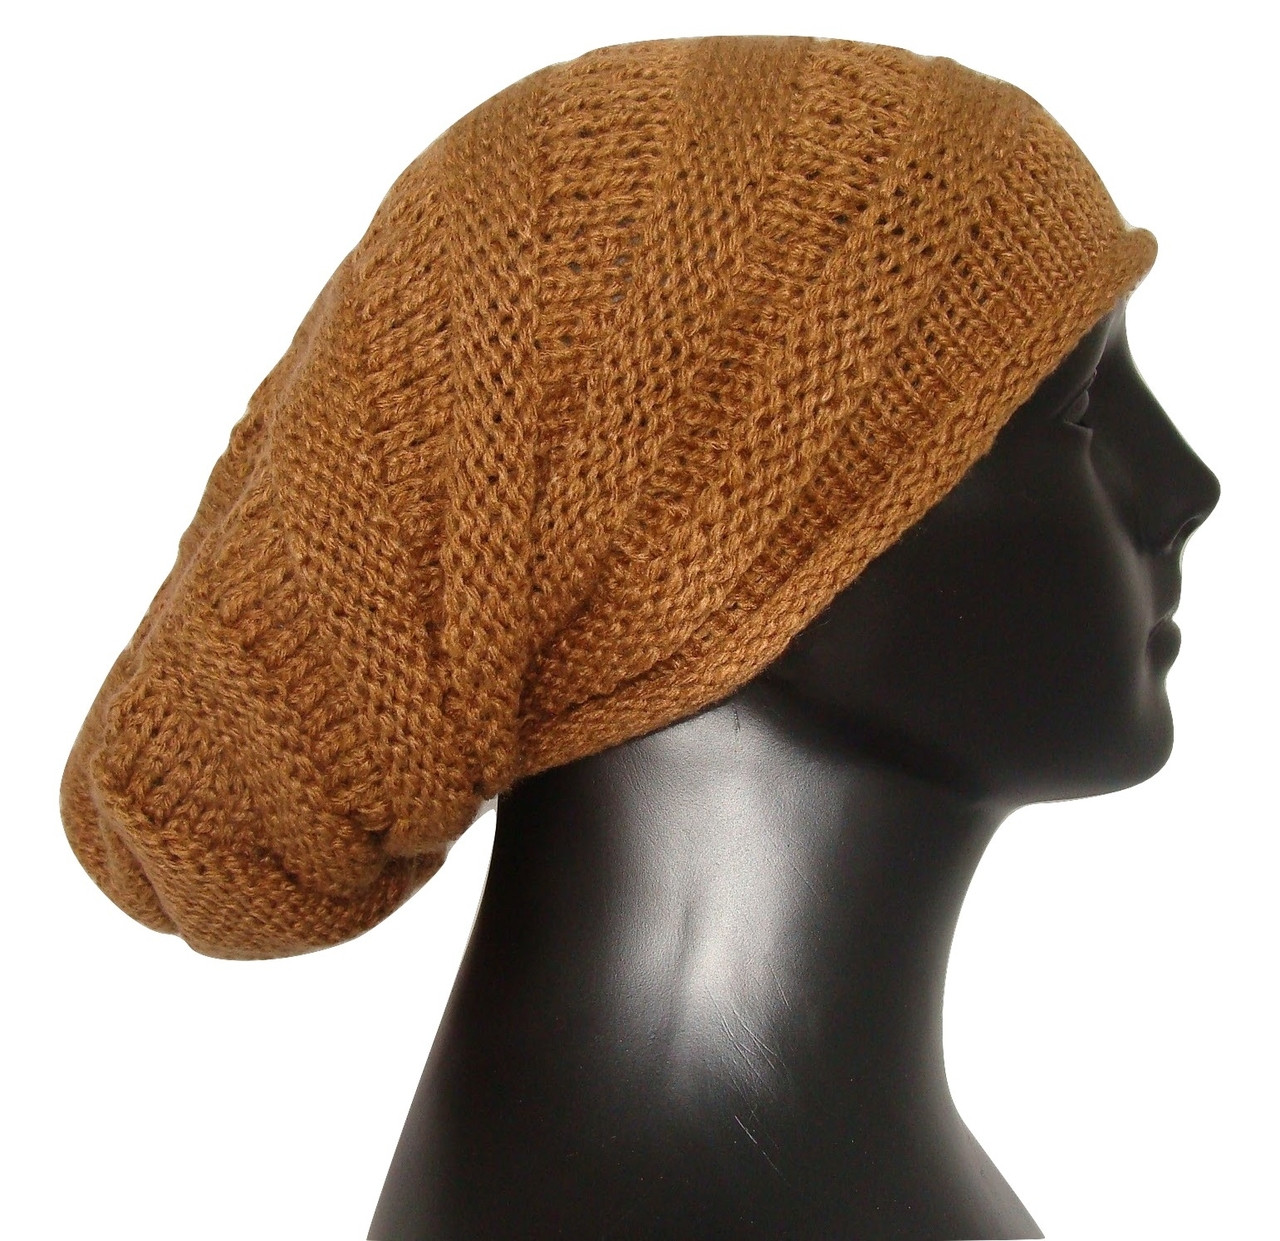 49120949892 Slouchy Beanie Hat Over-sized 100% Alpaca Natural Colors Soft and Warm -  Sanyork Fair Trade